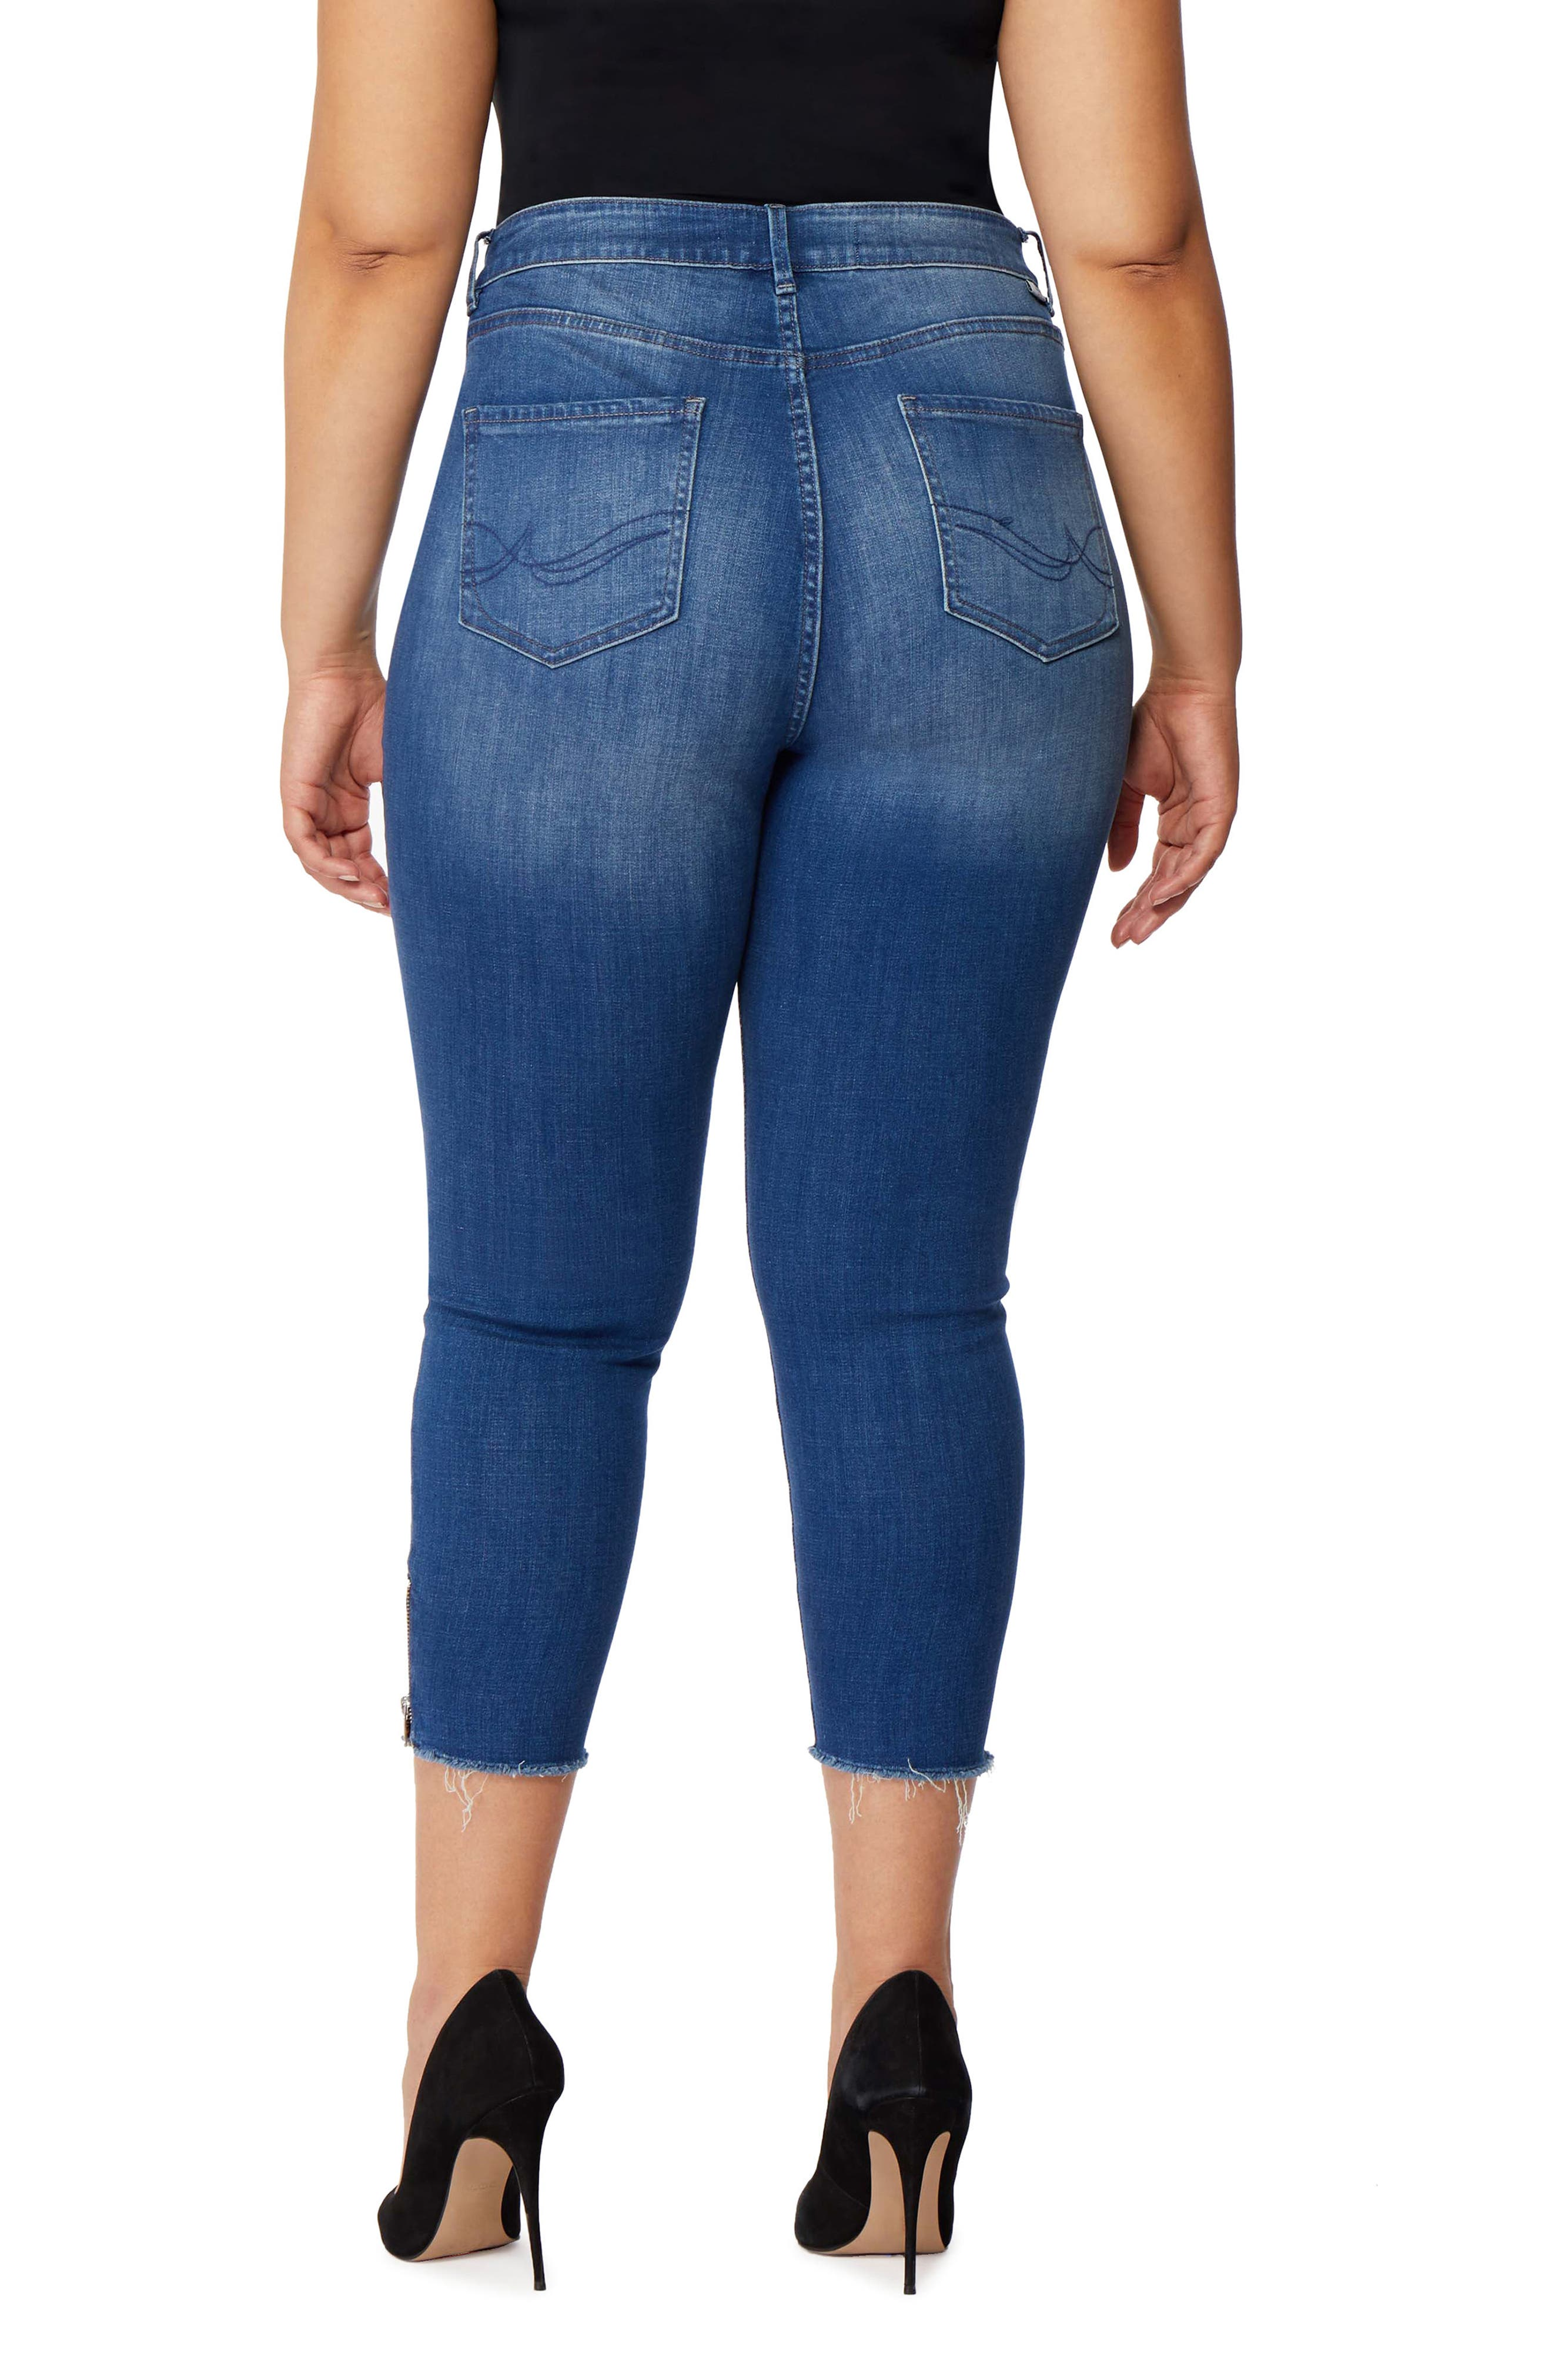 Icon Crop High Waist Skinny Jeans,                             Alternate thumbnail 2, color,                             453